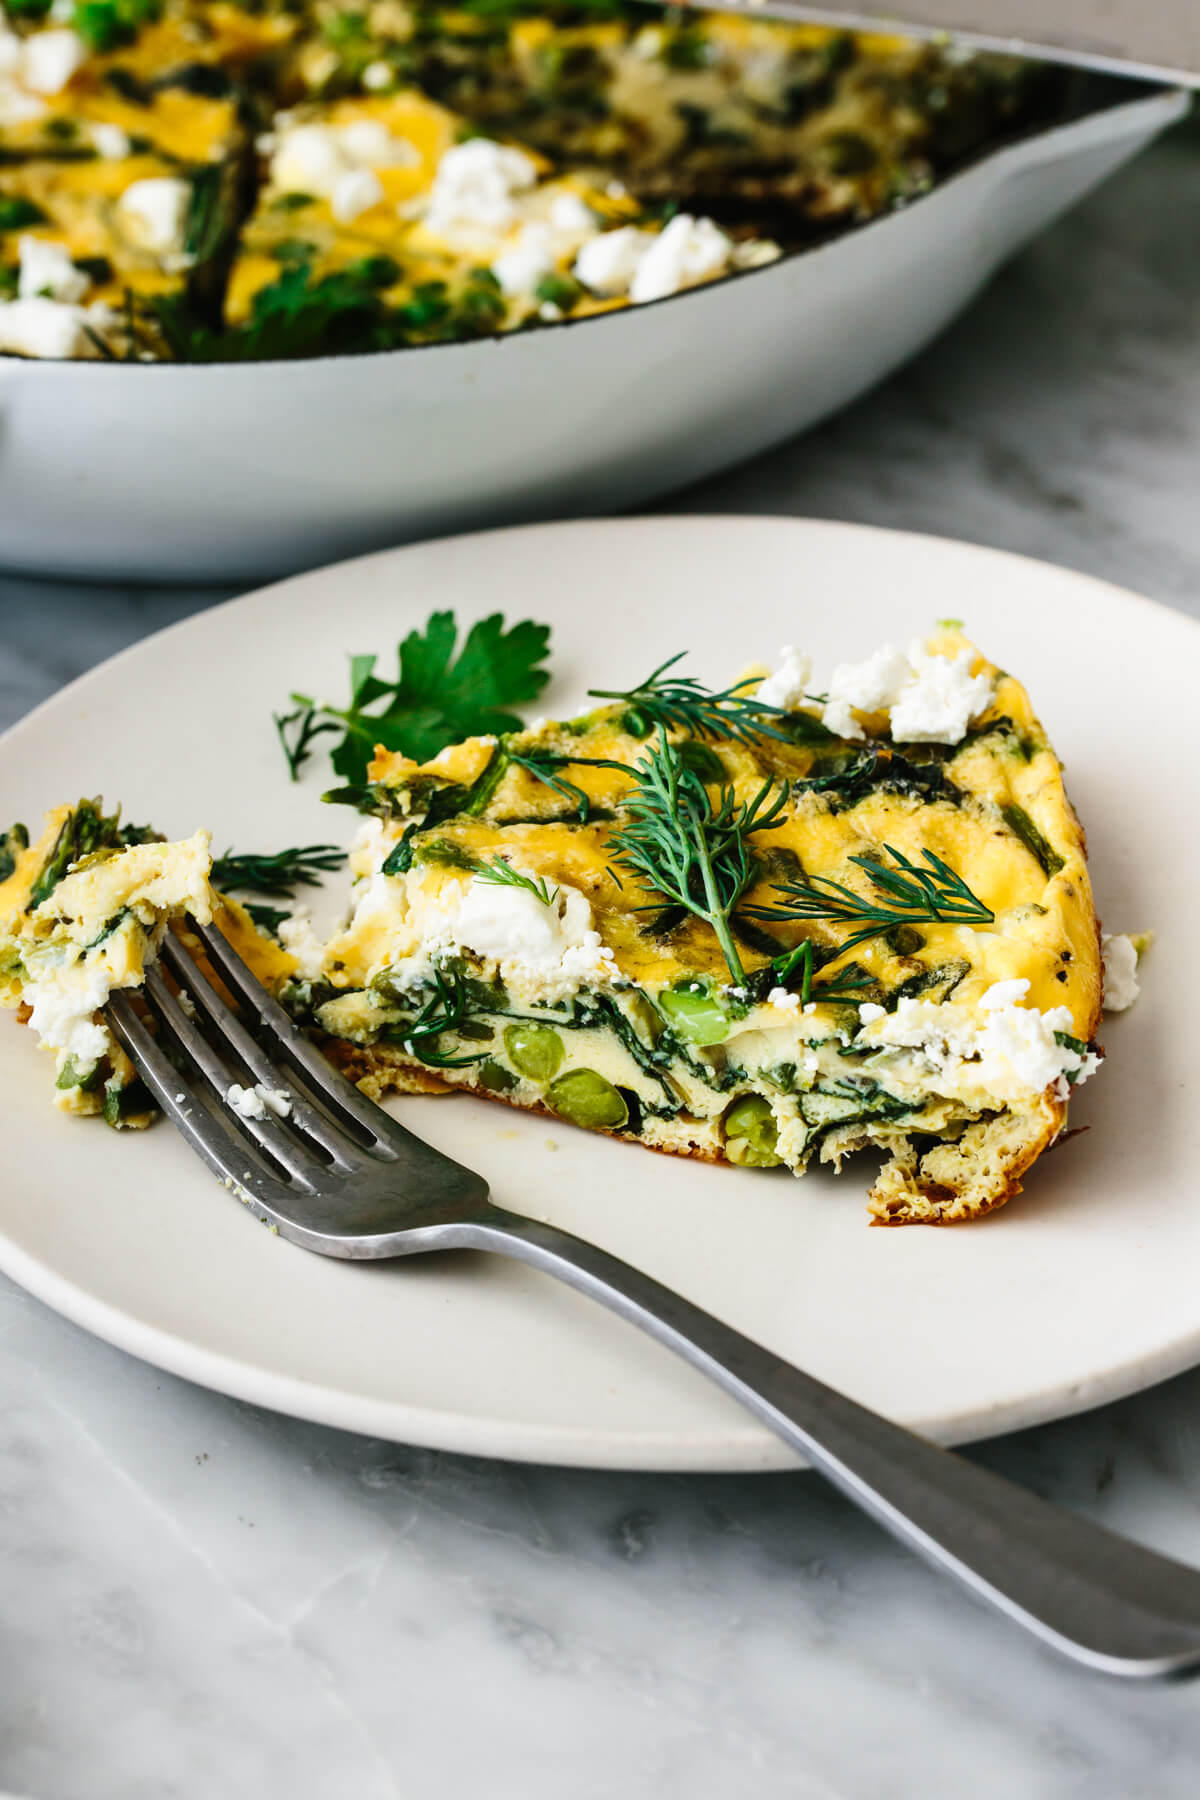 A slice of spring vegetable frittata on a plate